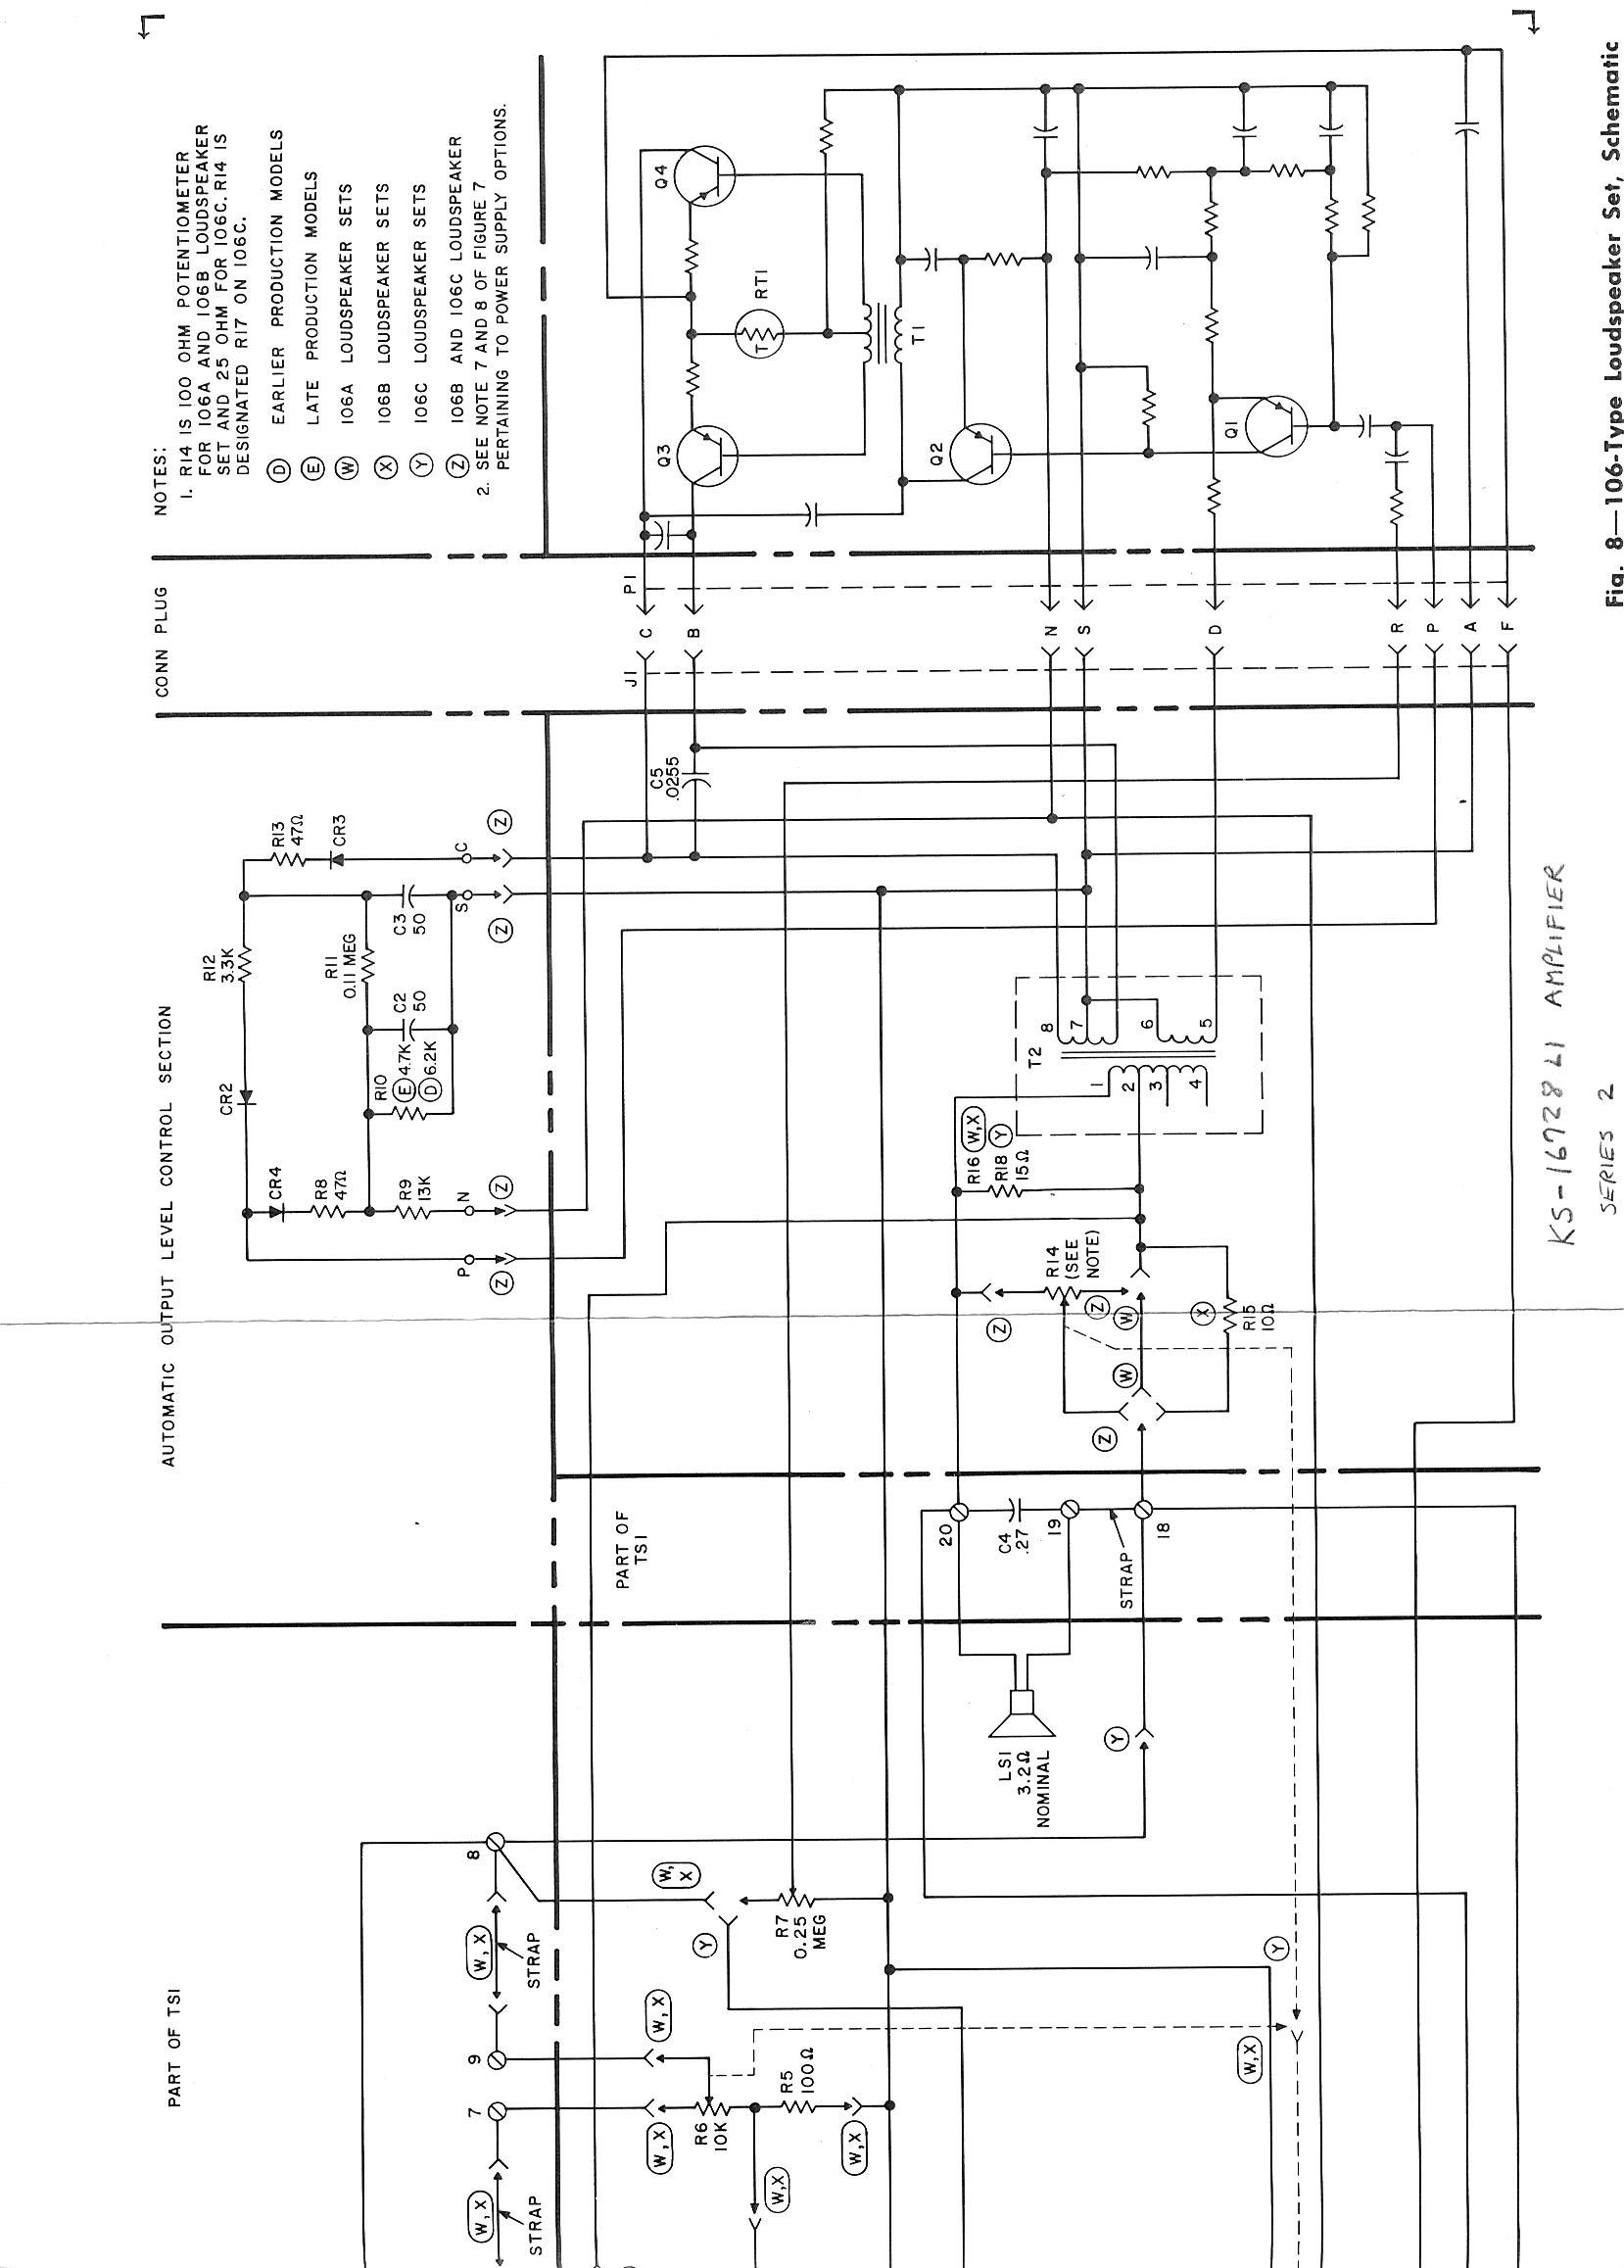 medium resolution of automatic electric payphone wiring google search wiring crazy wiring diagram automatic electric payphone wiring google search